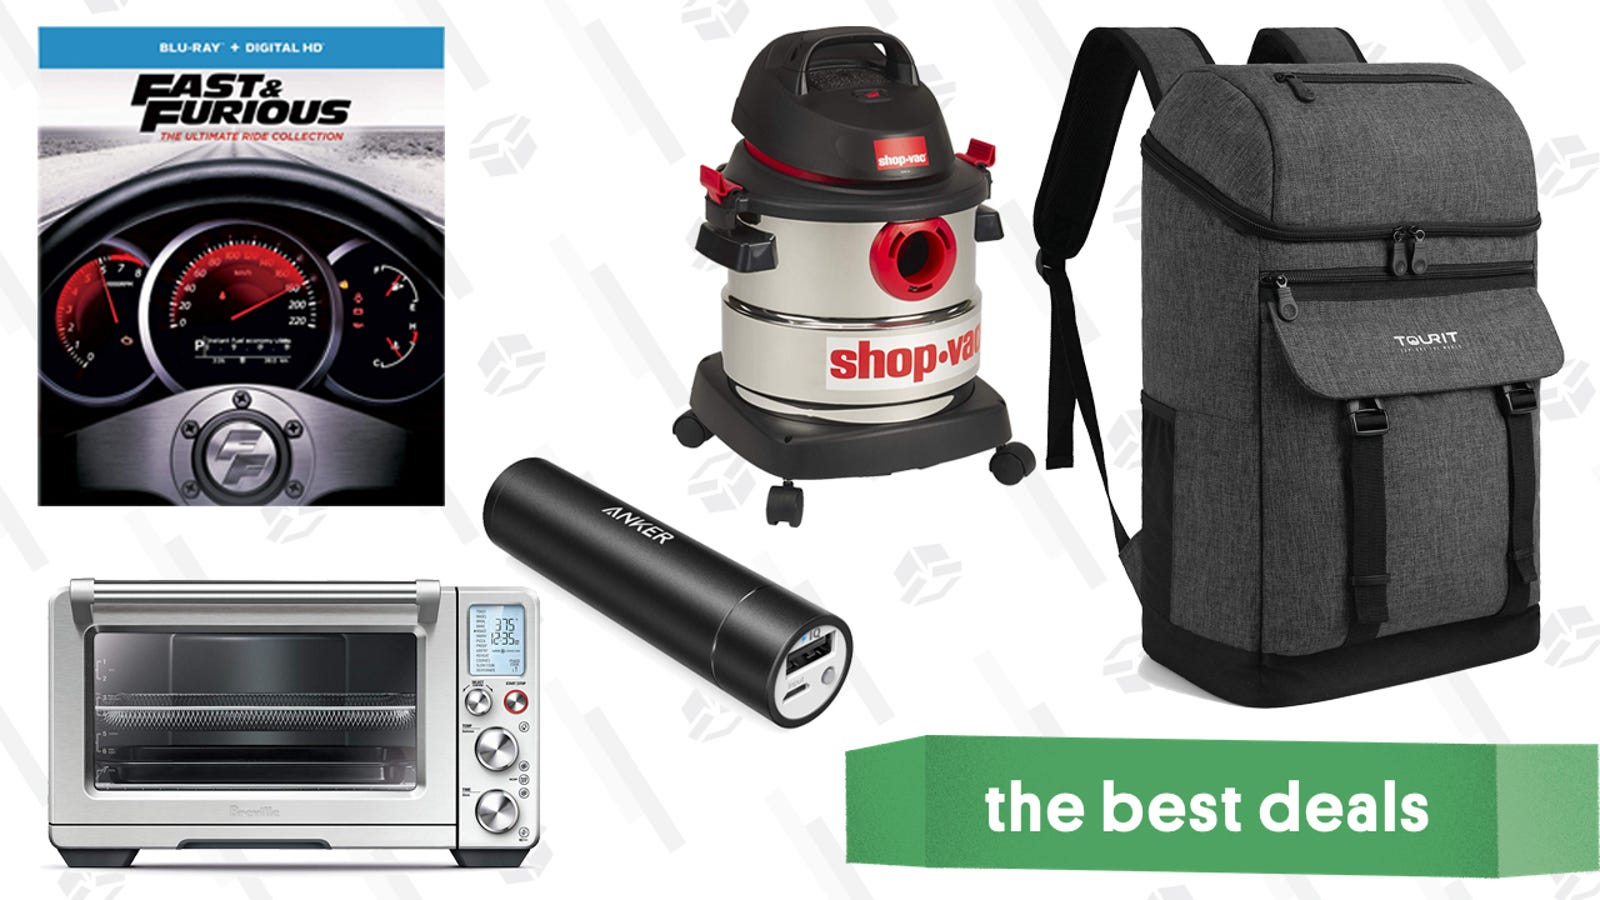 QnA VBage Monday's Best Deals: Anker Lightning Cables, Smart Oven, Insulated Backpacks, and More